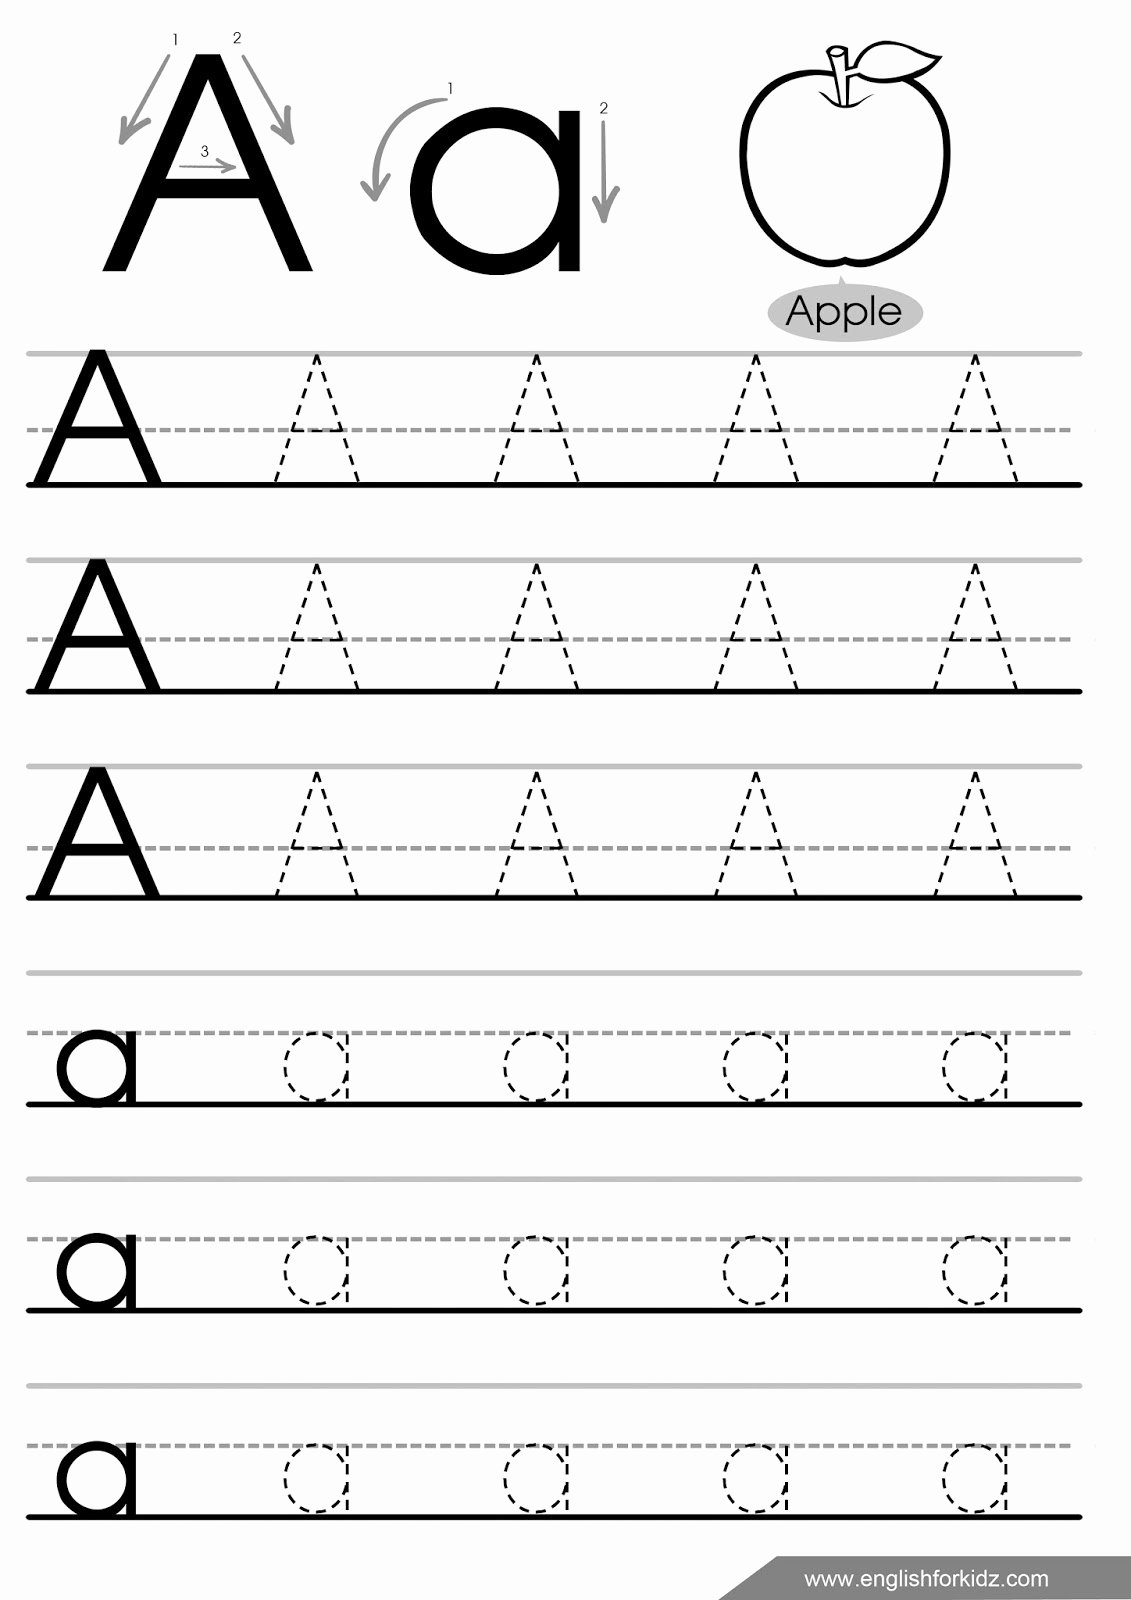 Alphabet Writing Worksheets for Preschoolers Best Of Math Worksheet Alphabet Tracing Worksheets for